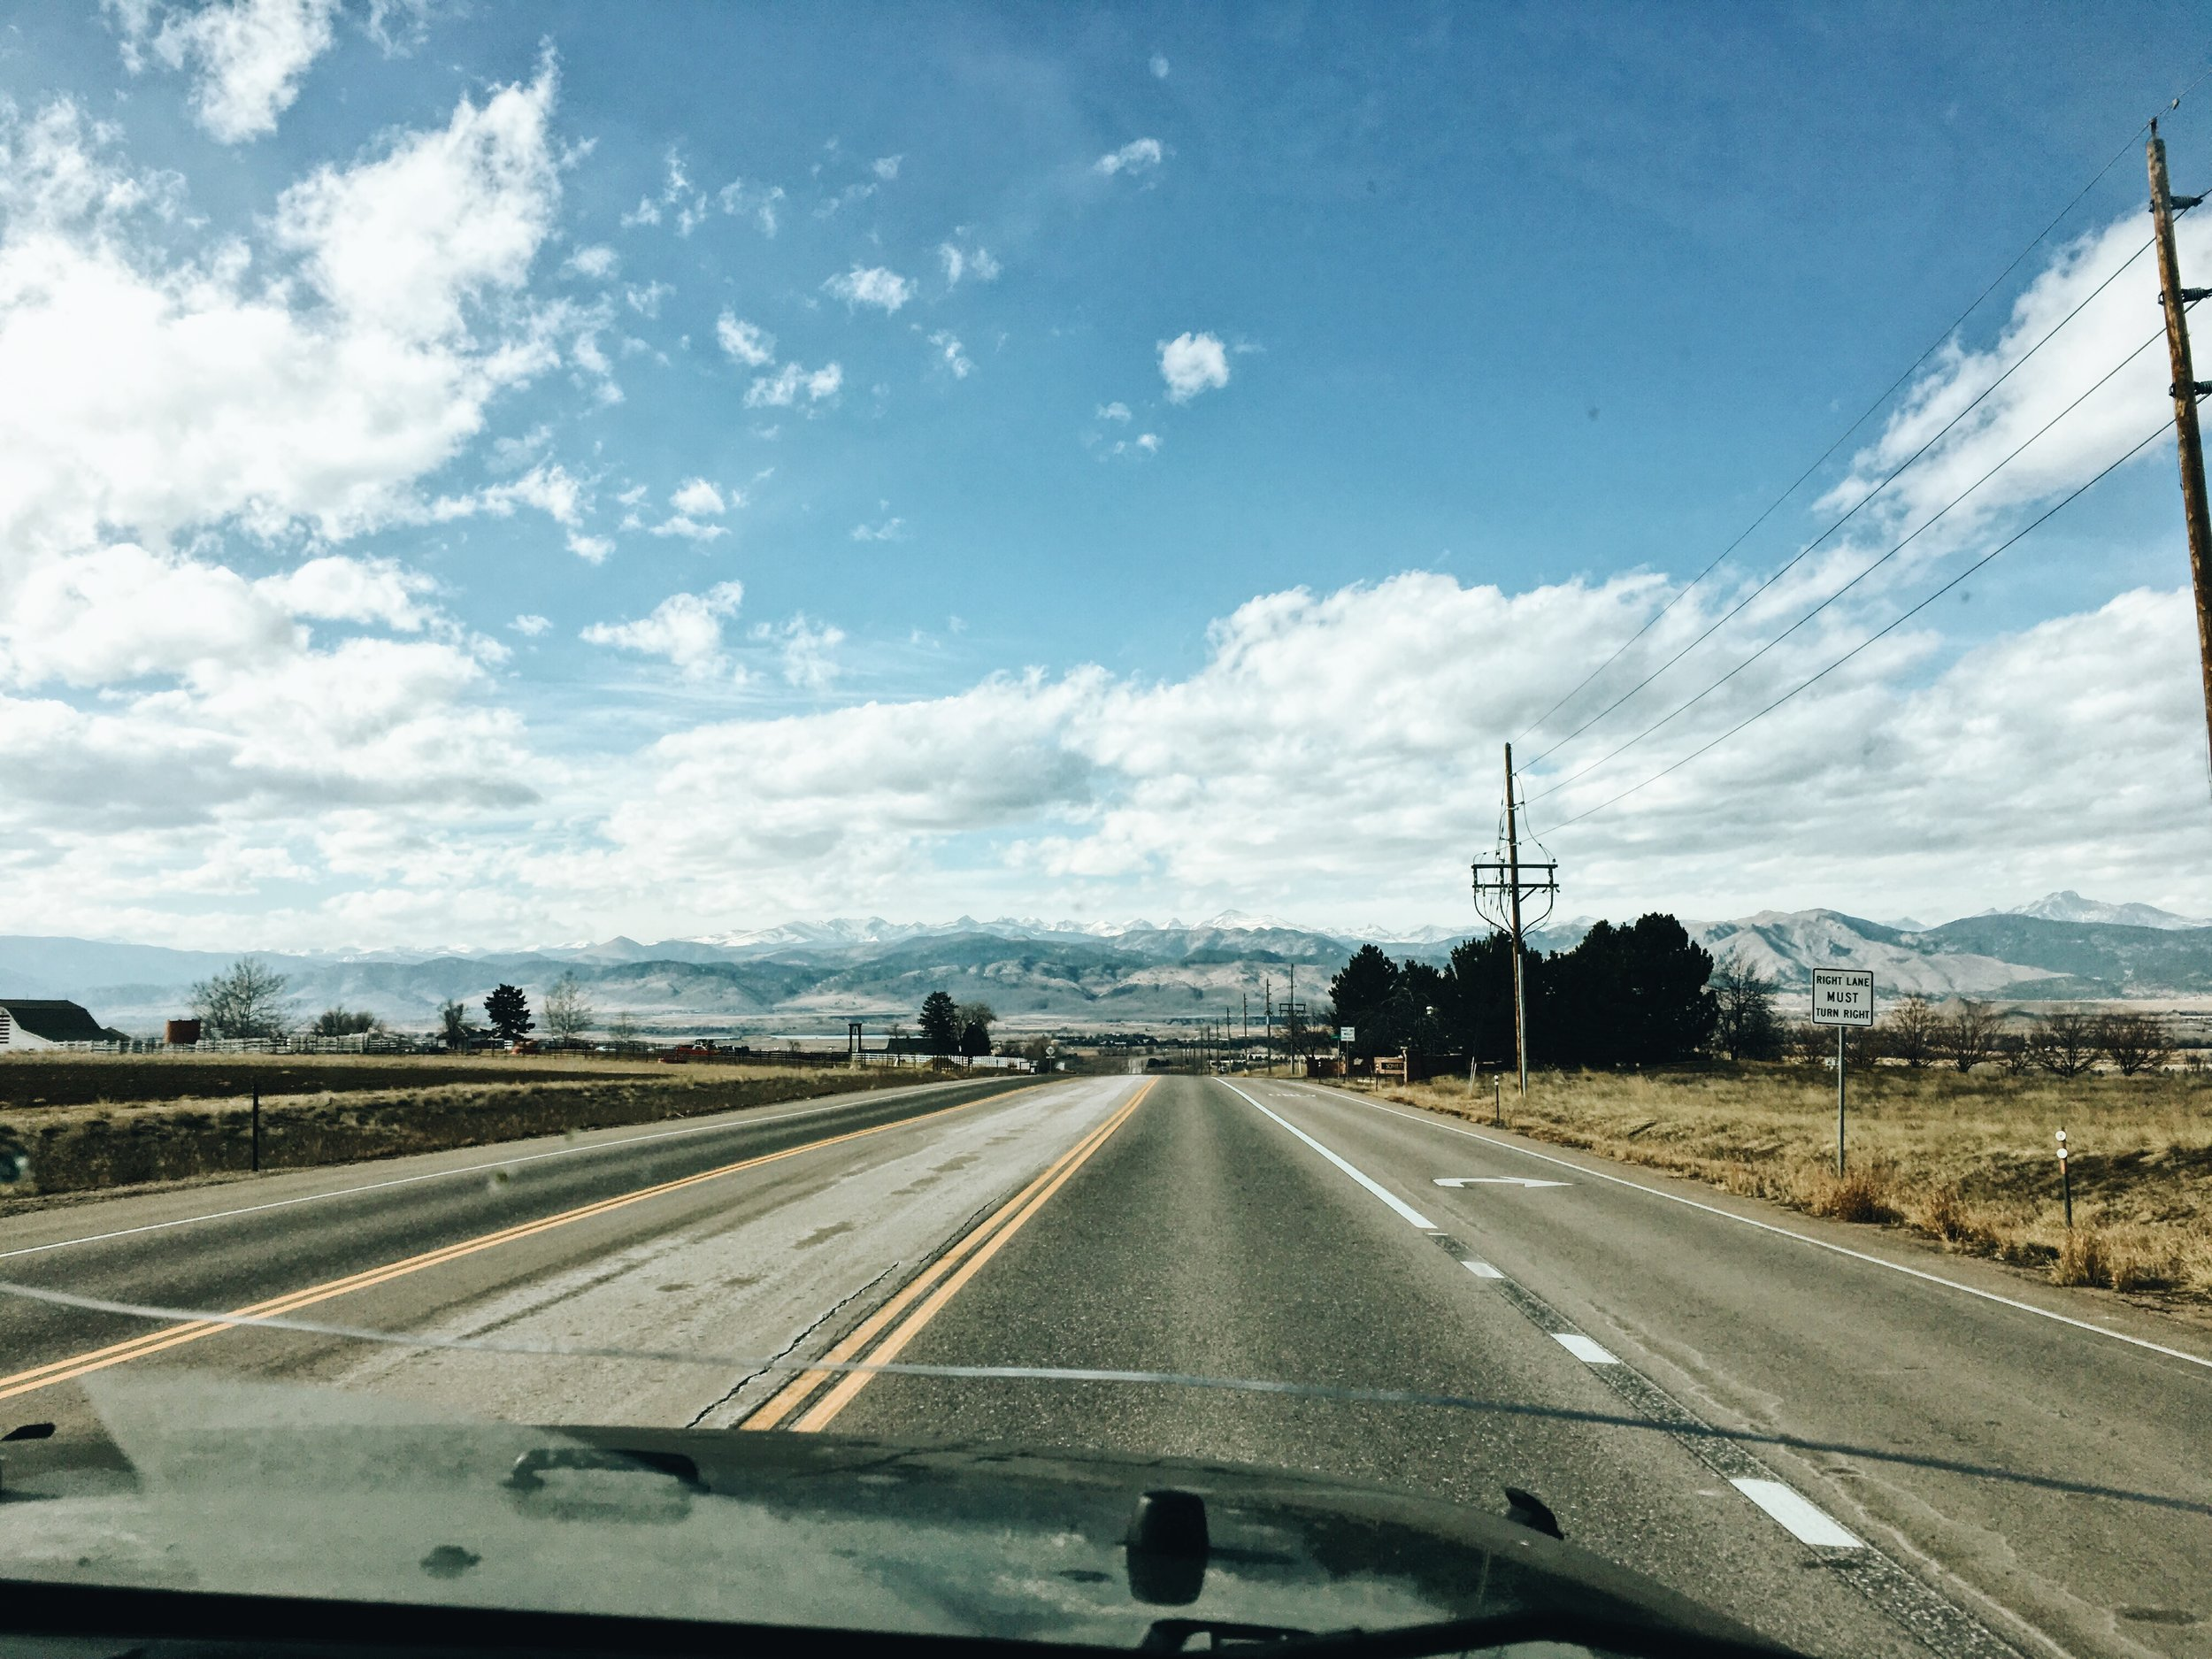 The beautiful Colorado mountains. I love this state, it's so open and beautiful.